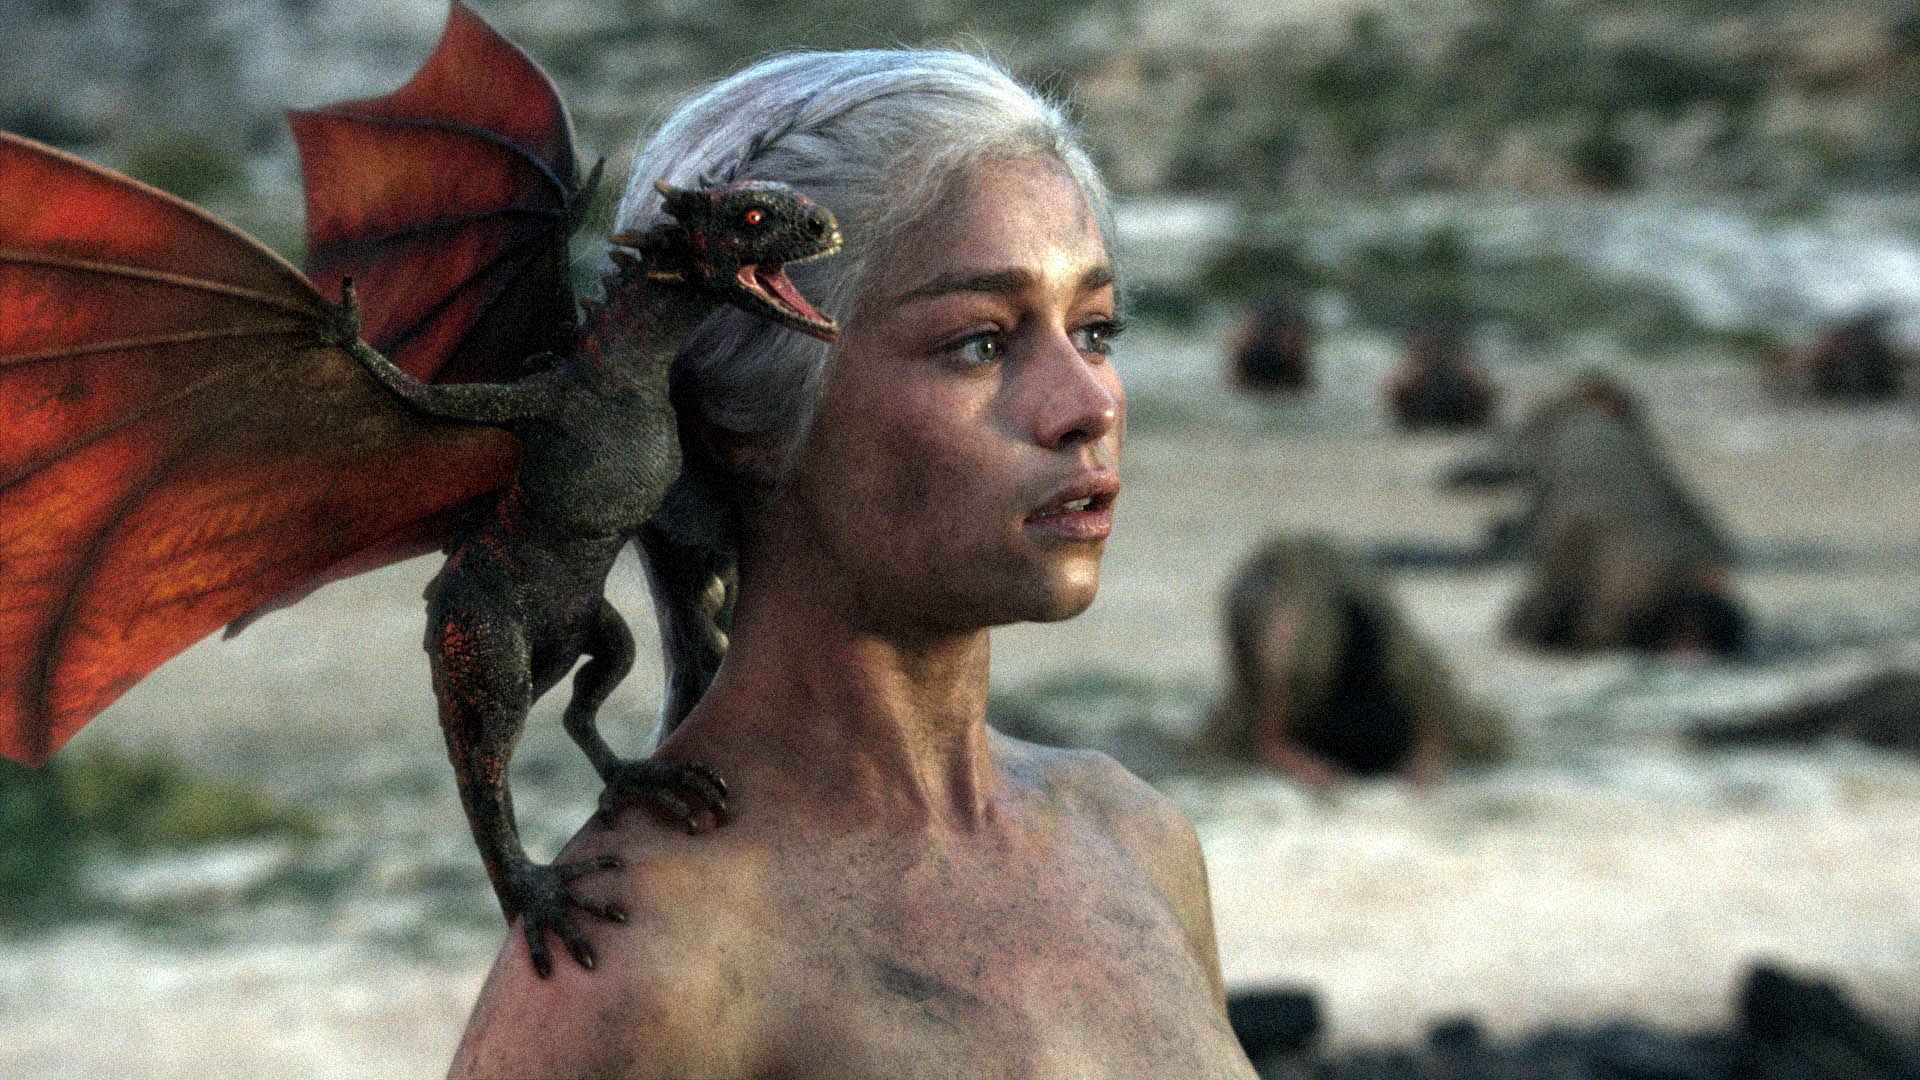 game-of-thrones-photo_85683-1920x1080